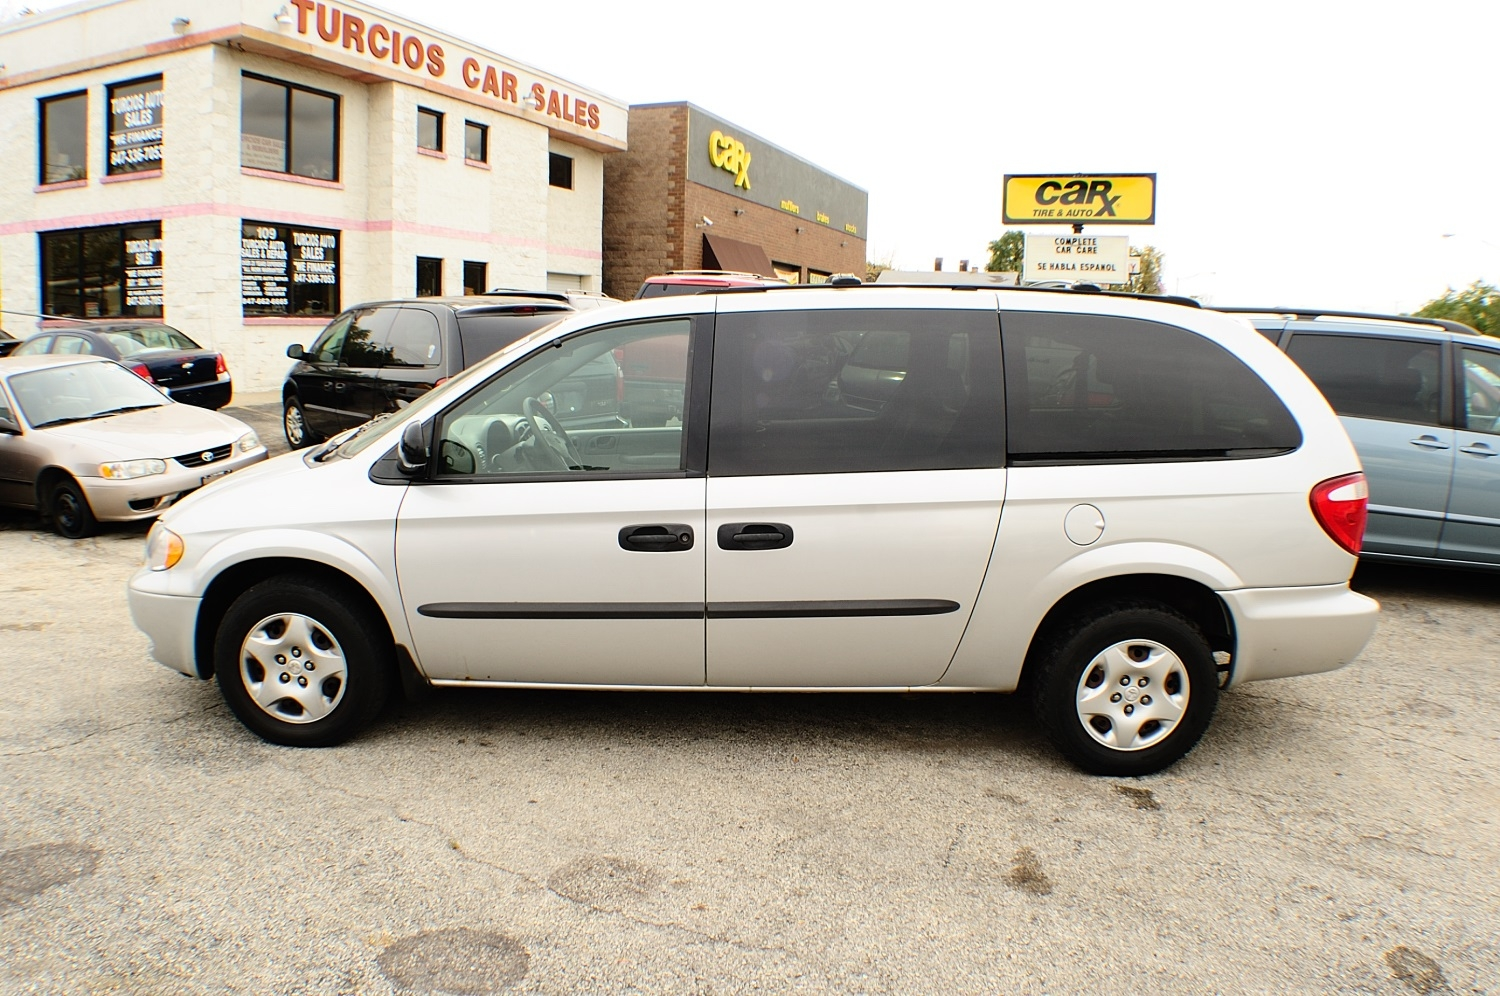 2003 Dodge Grand Caravan SXT Silver Mini Van used car sale Antioch Zion Waukegan Lake County Illinois